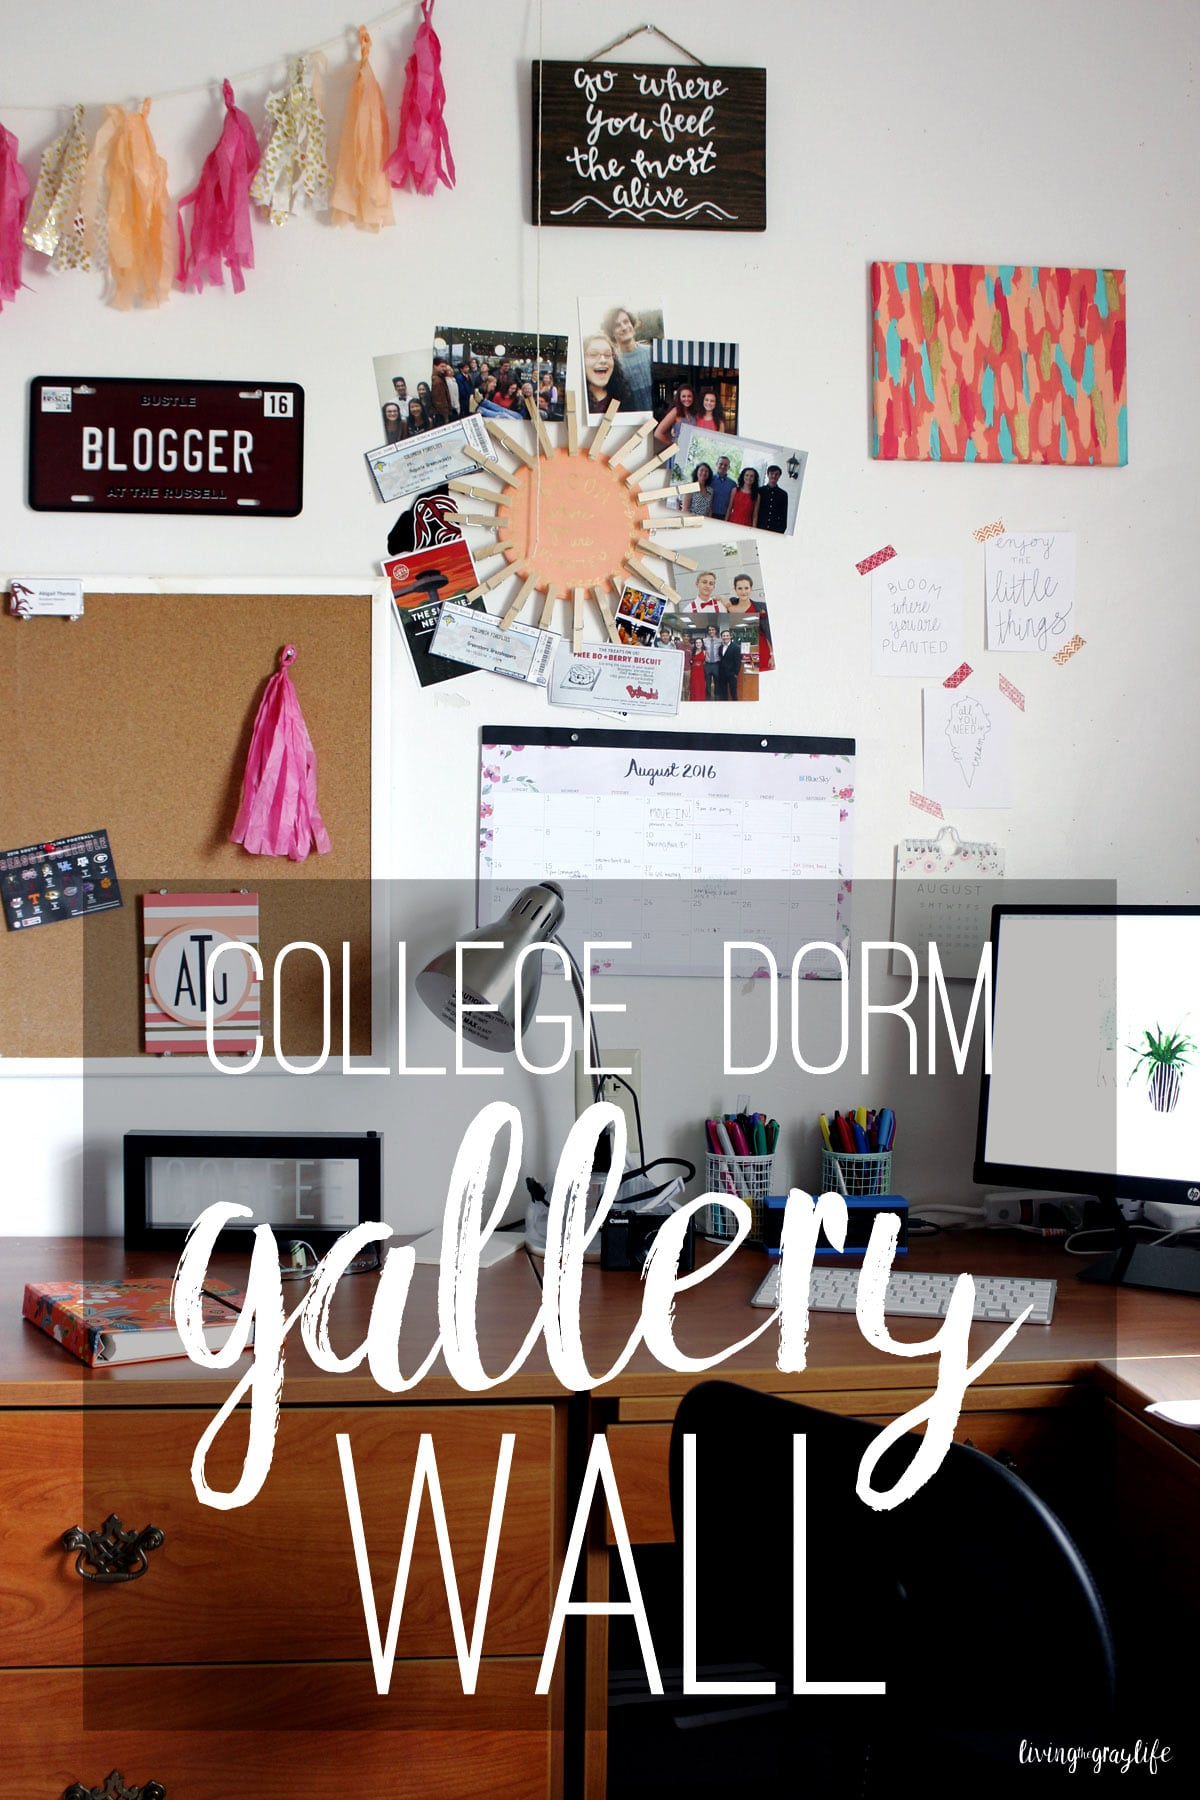 Dorm Room Wall Decor: Creating A College Dorm Gallery Wall